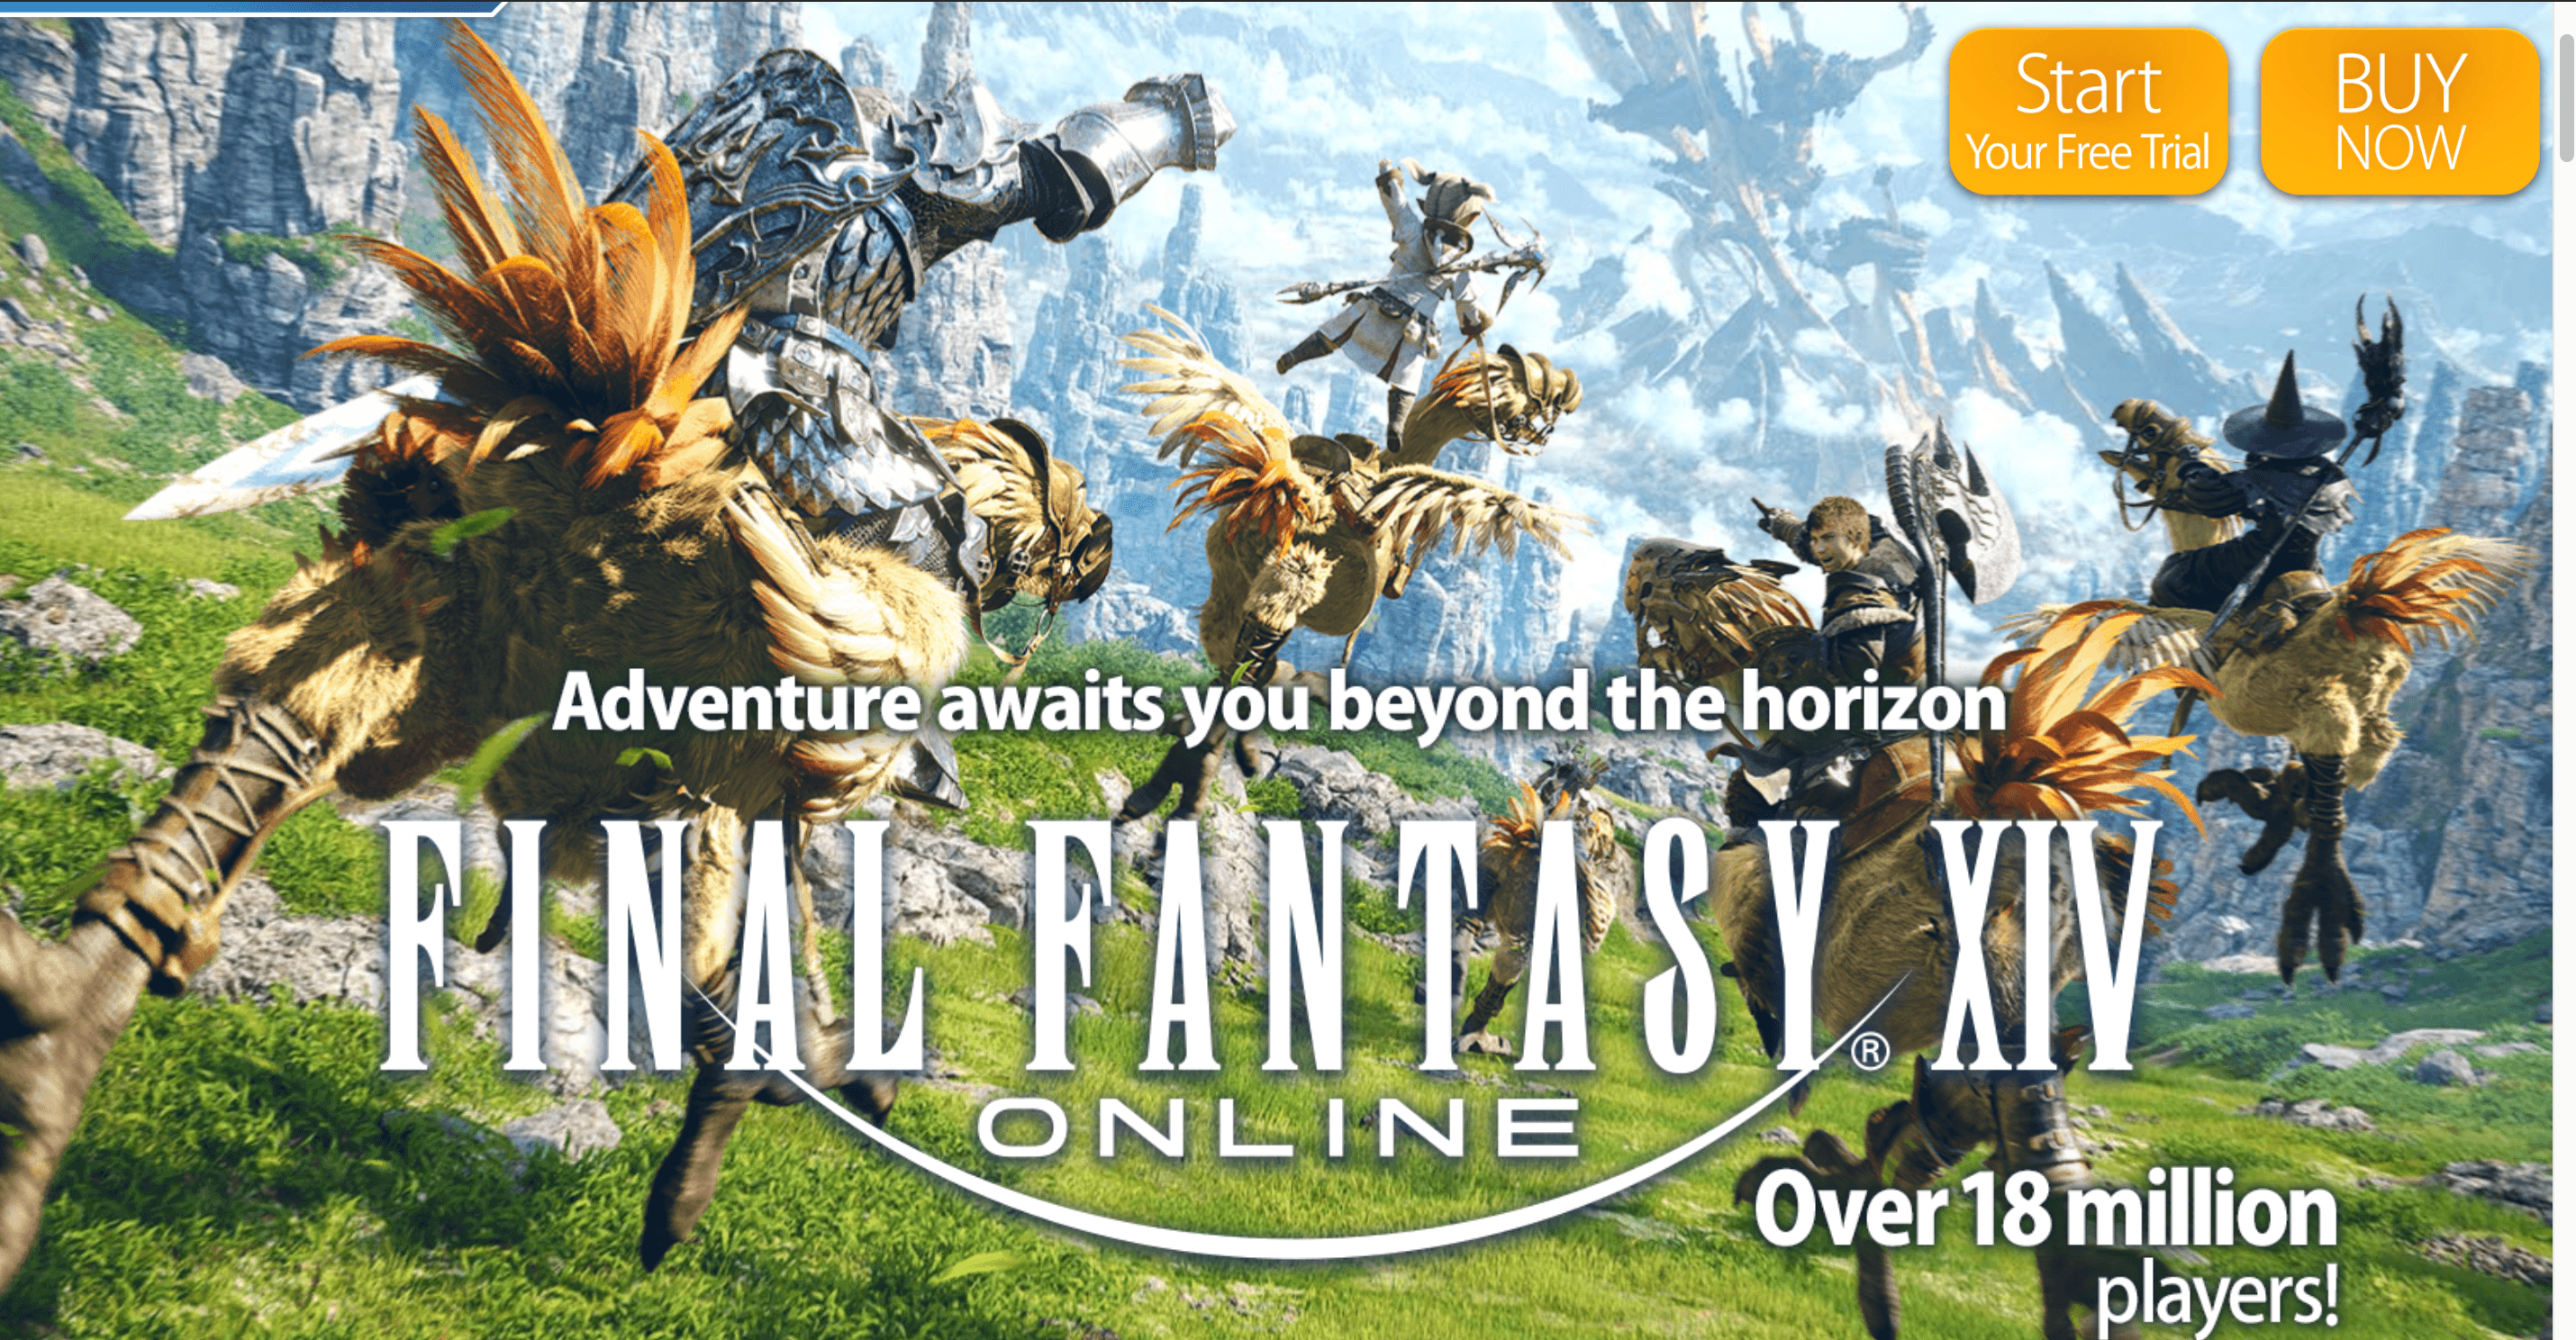 final fantasy characters online